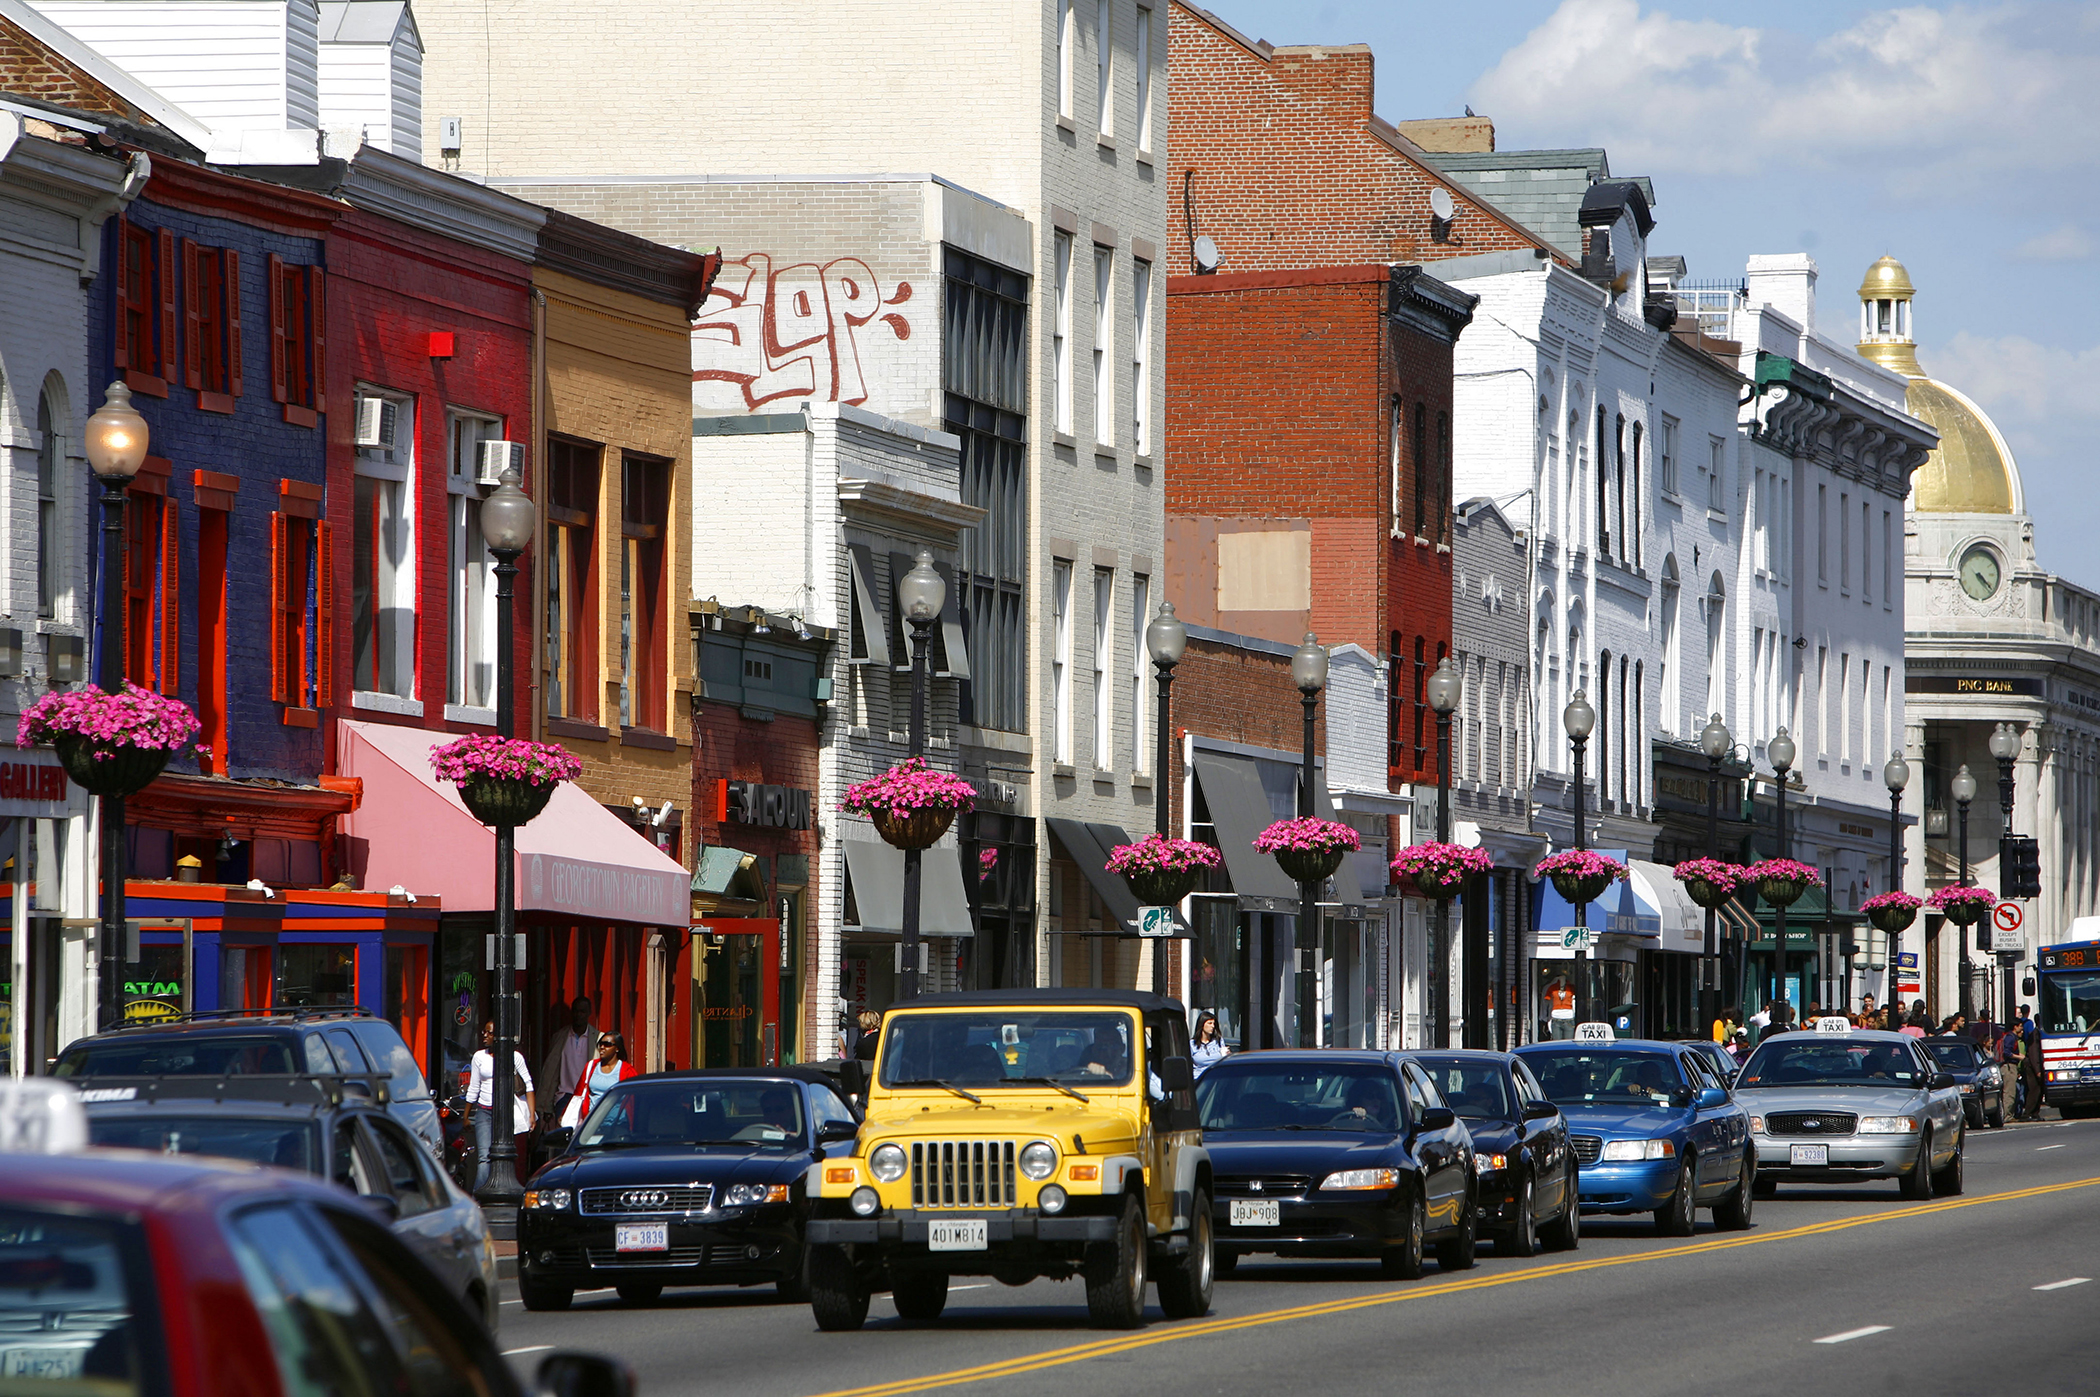 2. Washington, D.C.:Two reasons it's great to be rich and single in Washington. The median household income is just over $72,000 and admission to all those date-friendly museums is free.